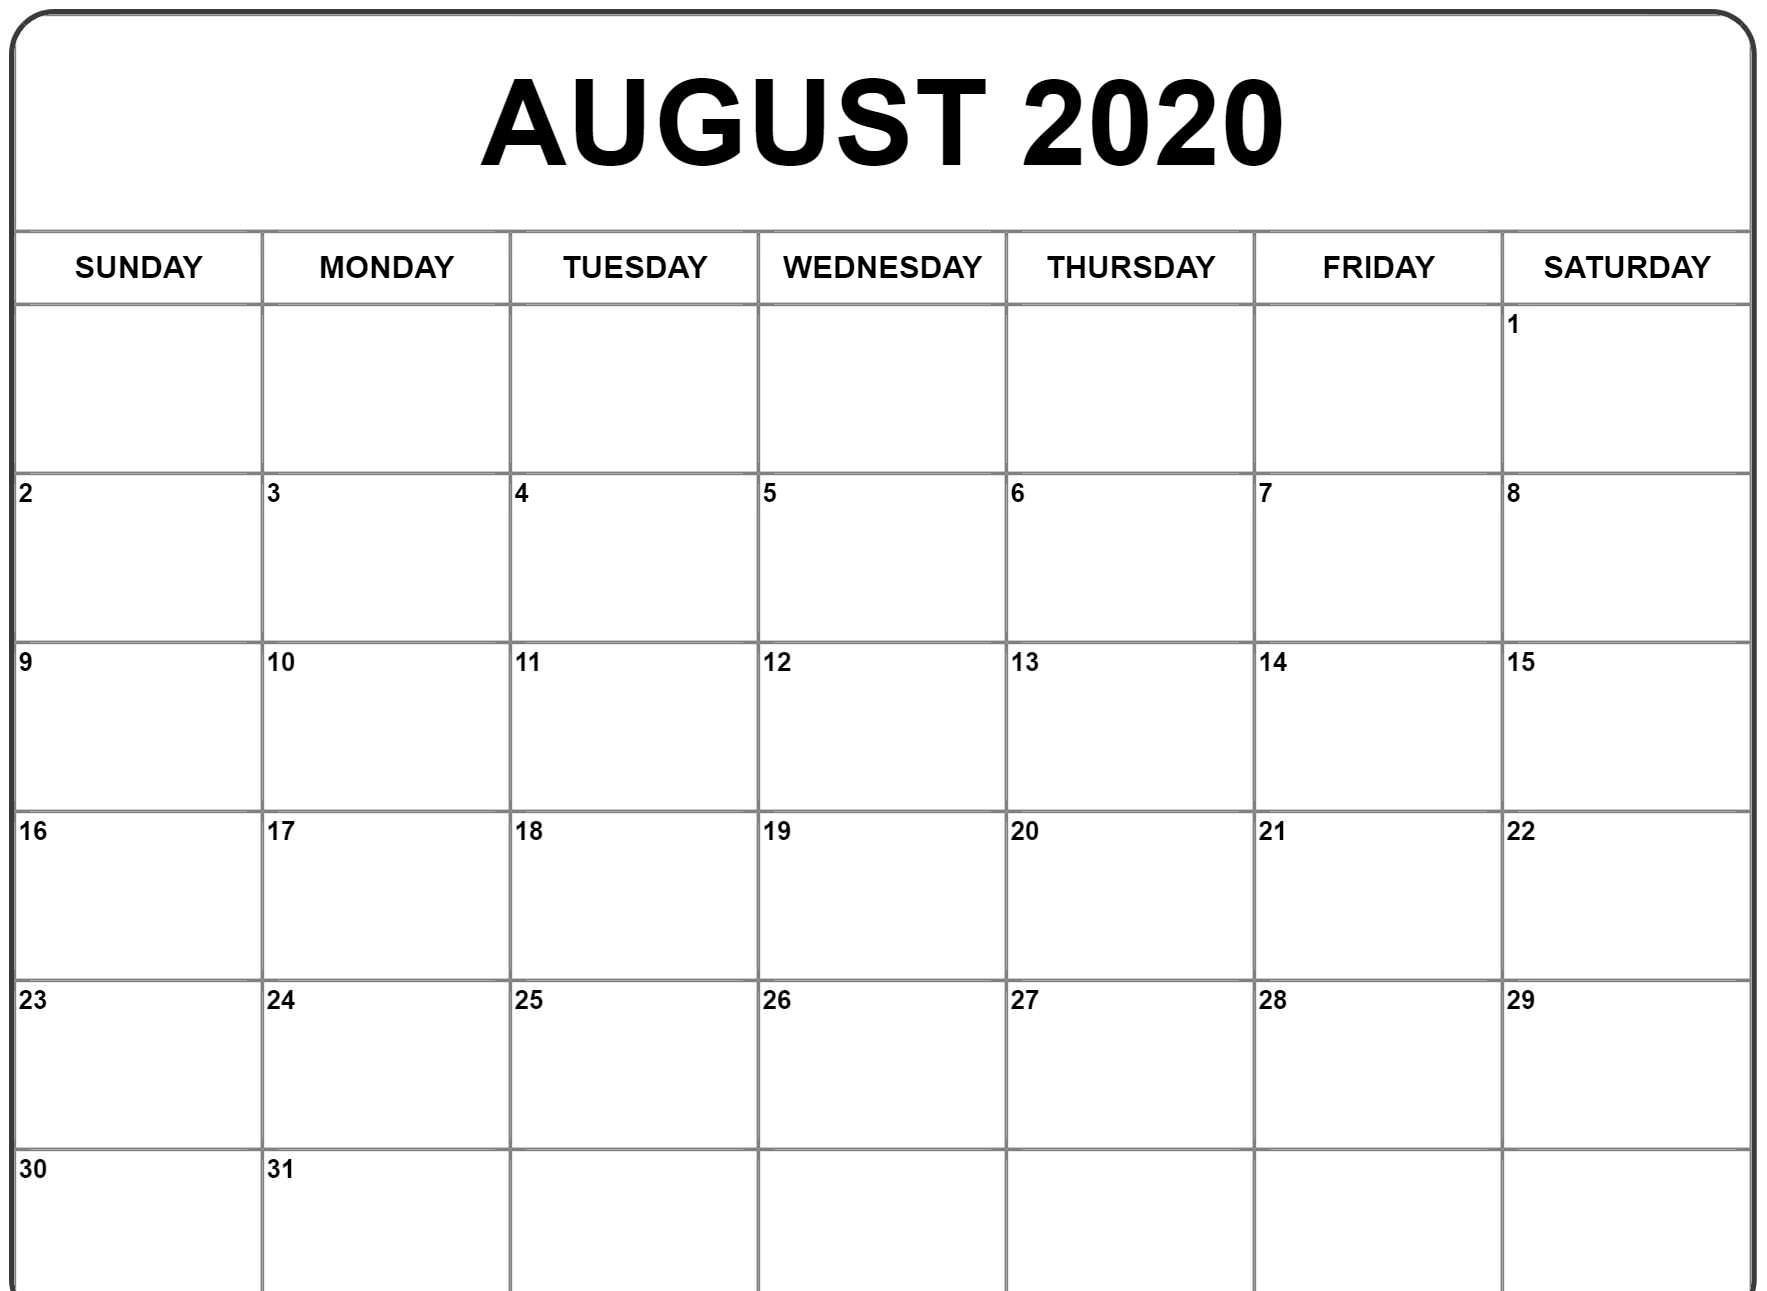 August 2020 Calendar Pdf, Word, Excel Printable Template-Calendar 2020 Monthly Business And Next Month